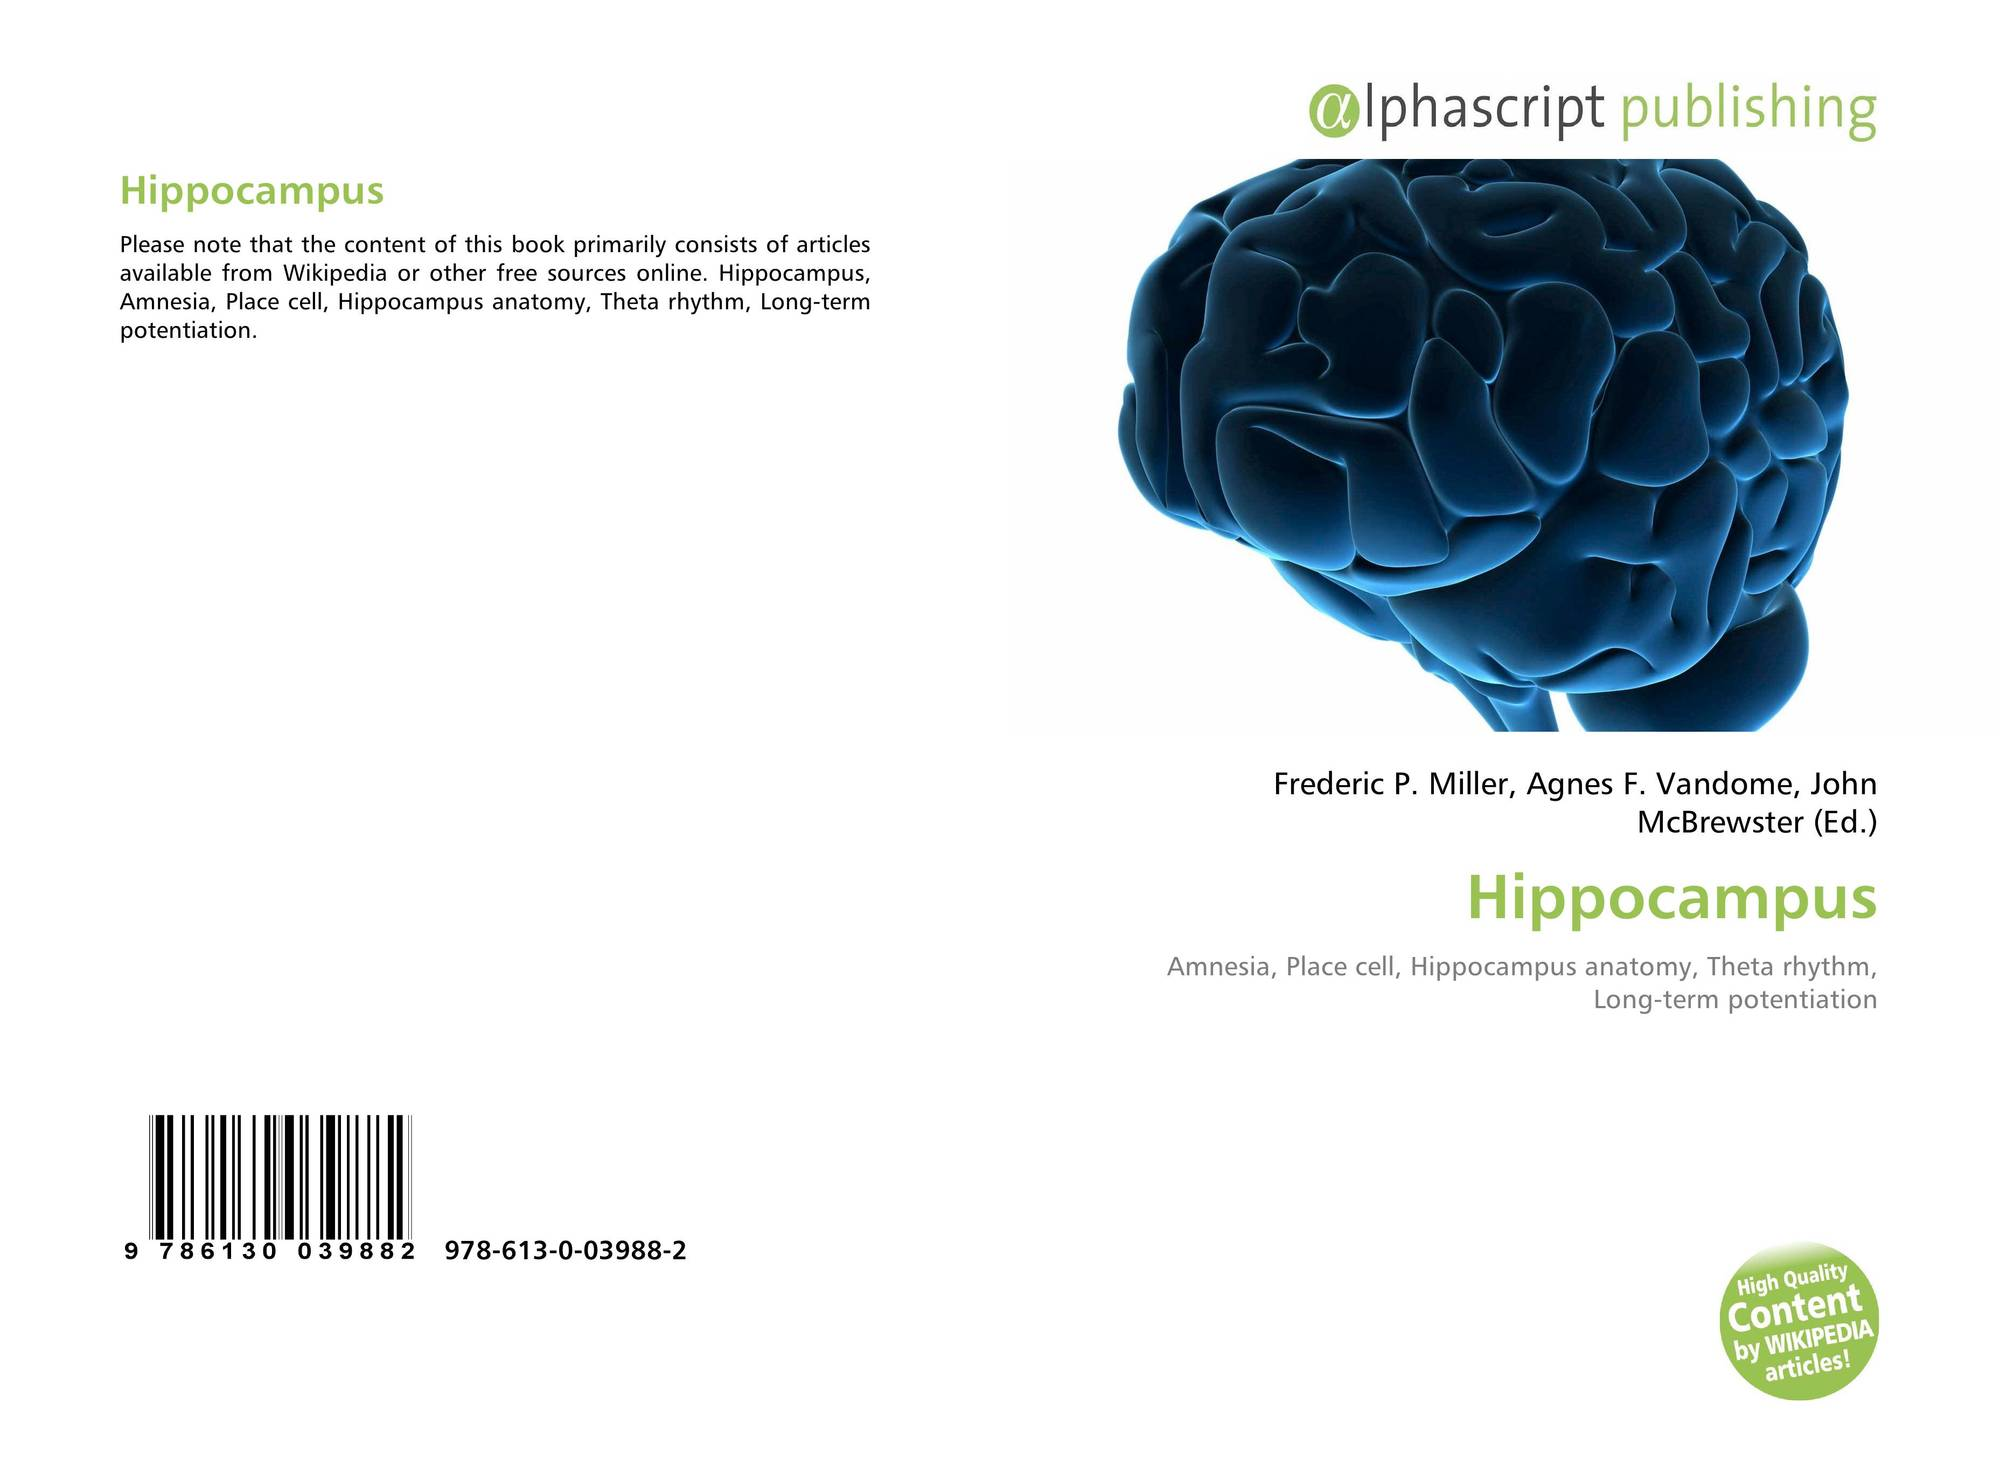 Anatomy Of Hippocampus Images - human body anatomy